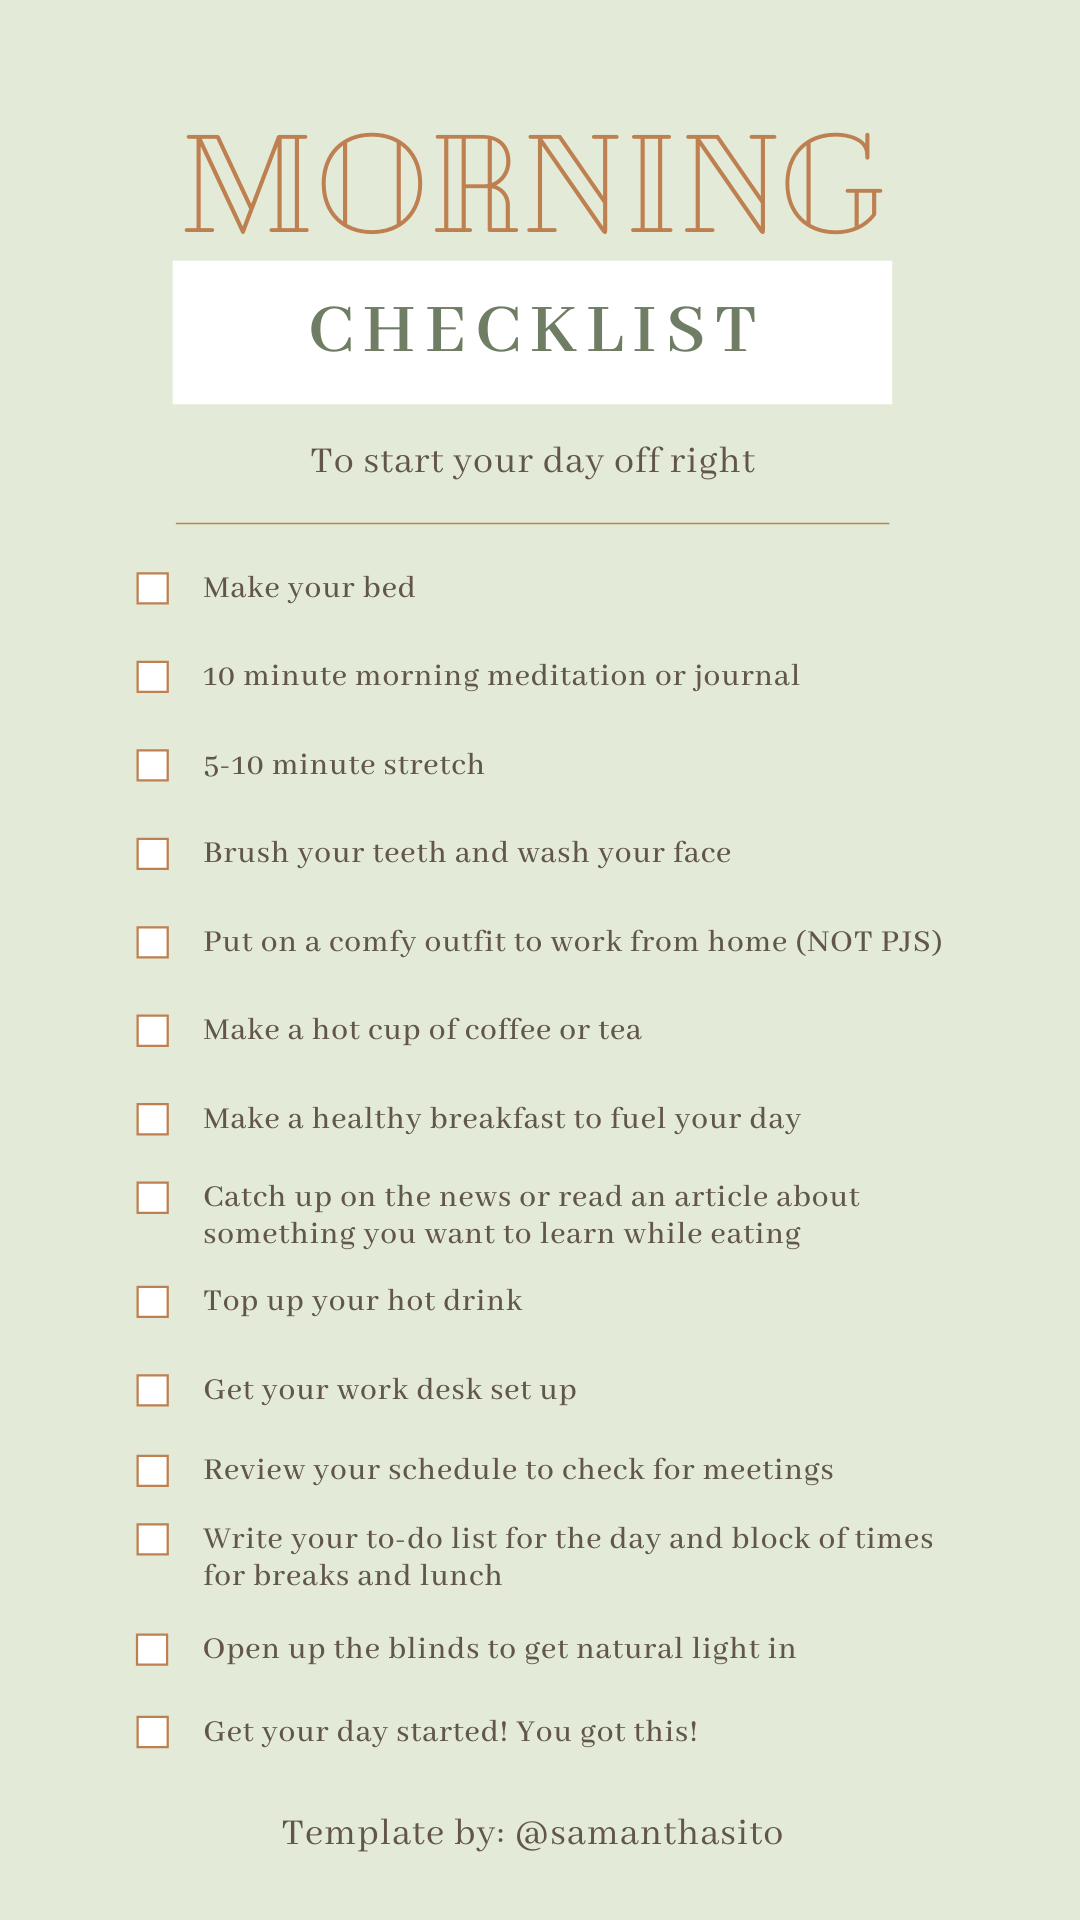 Morning Checklist for a Productive Day A checklist